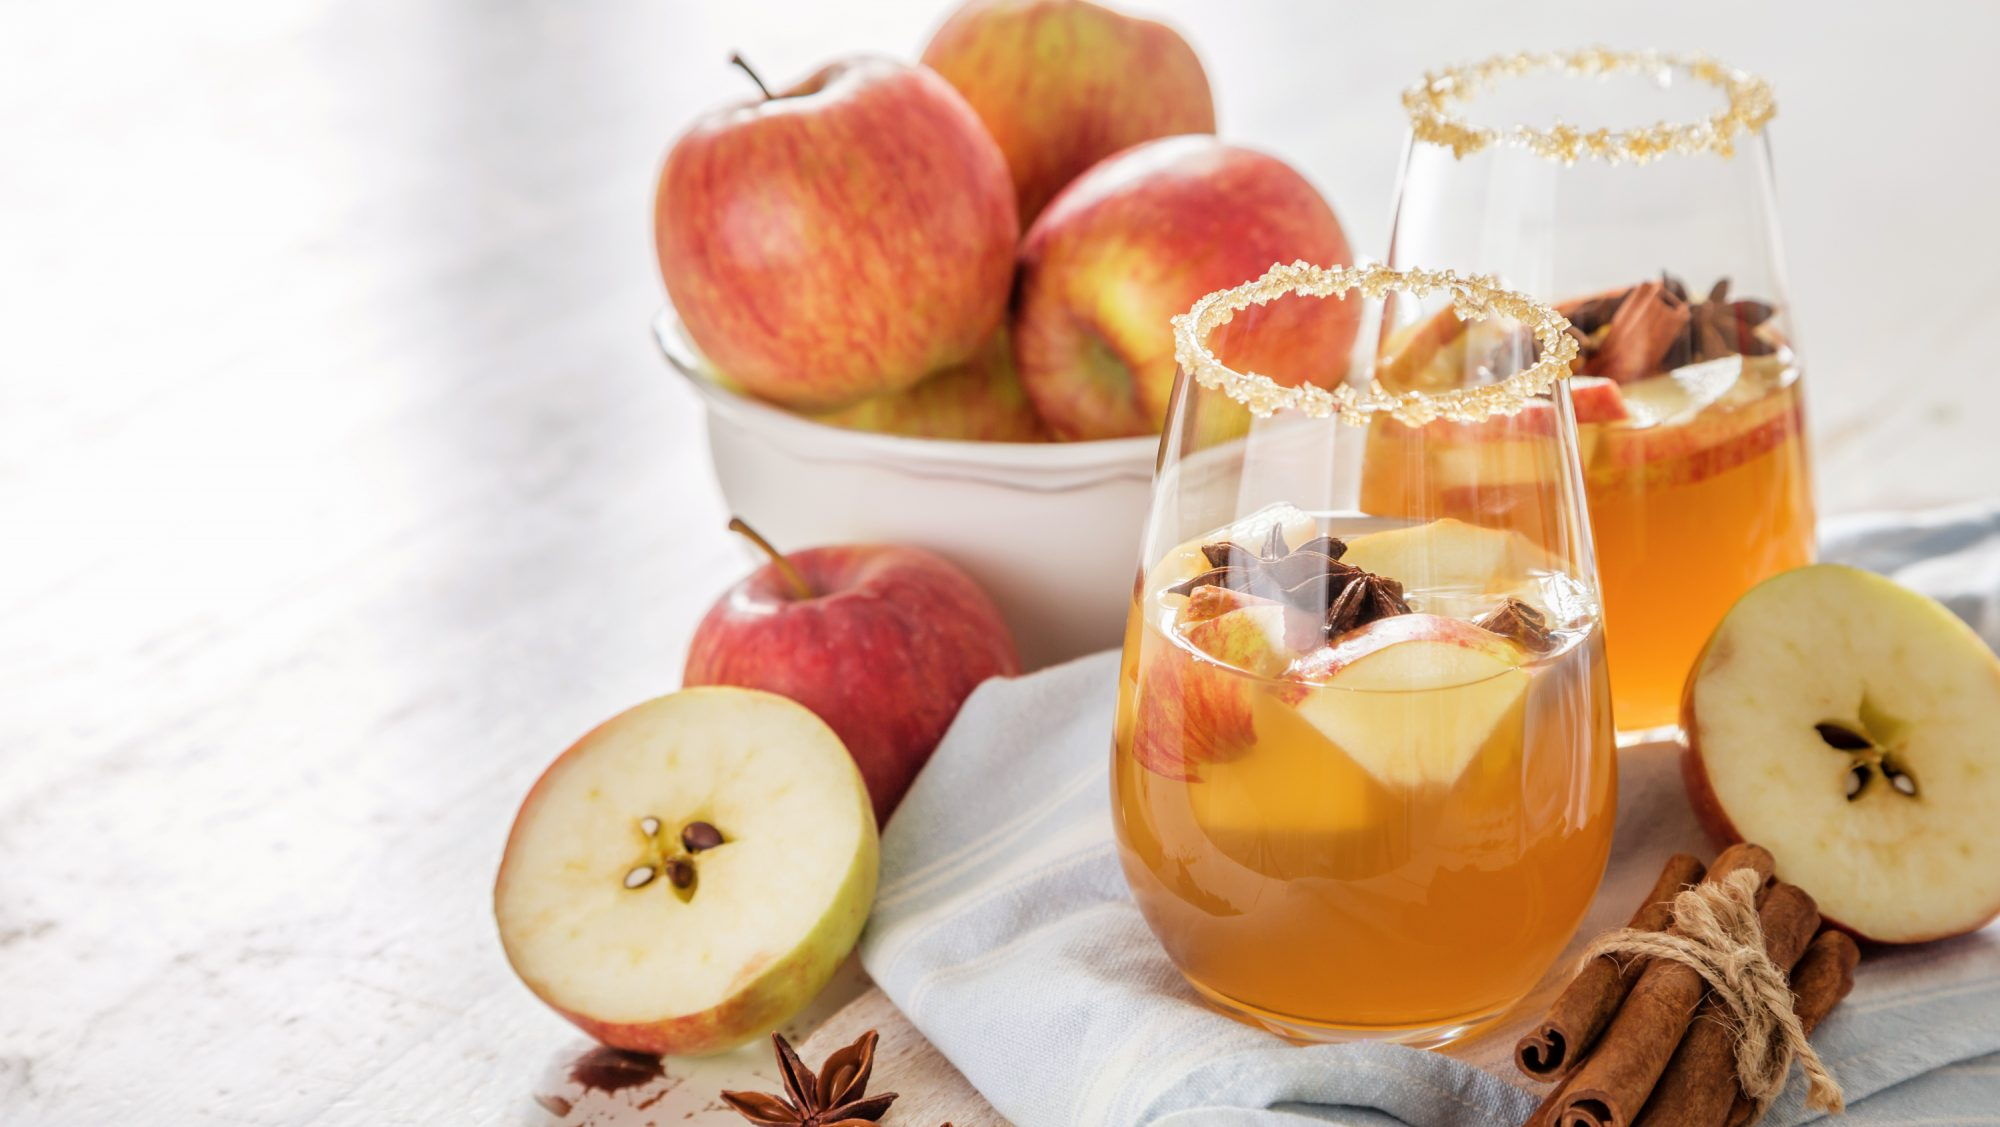 Celebrate Fall With This Refreshing Apple Cinnamon-Spiced Cocktail